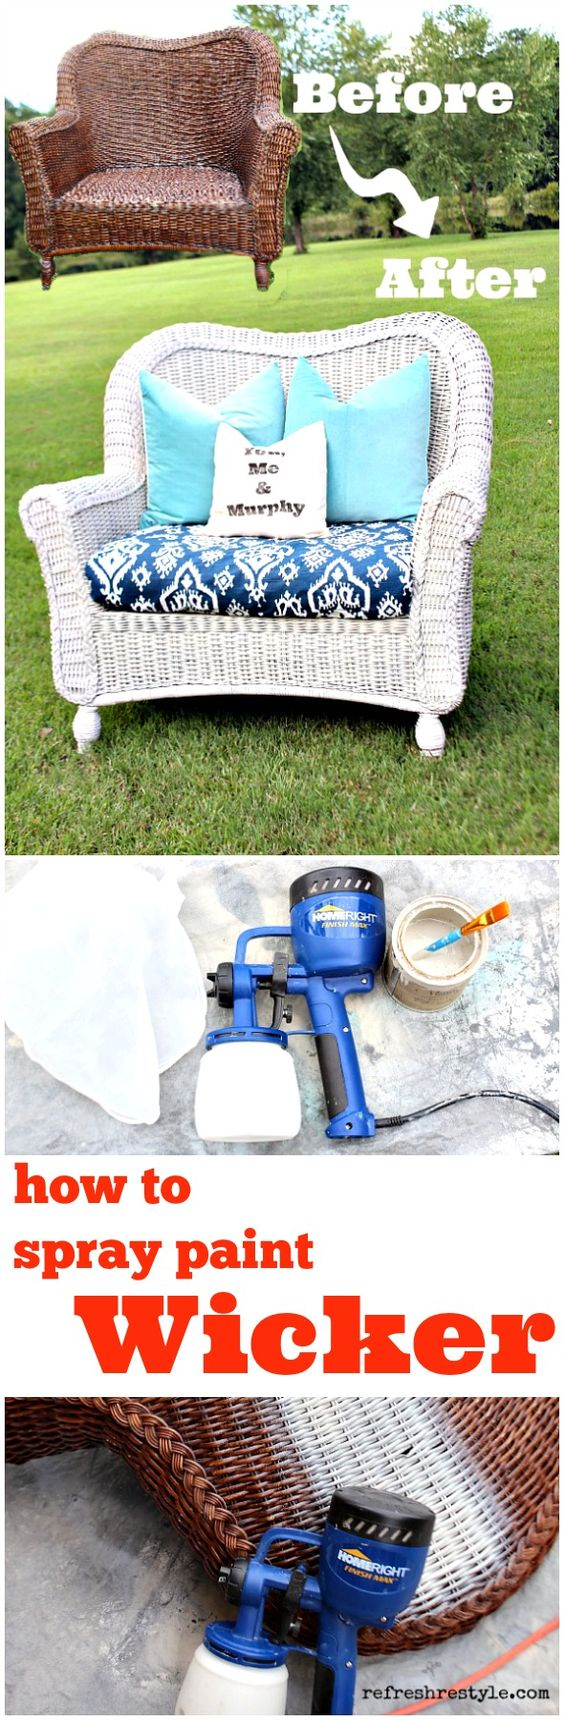 Spray Paint Wicker Paint Wicker And How To Spray Paint On Pinterest